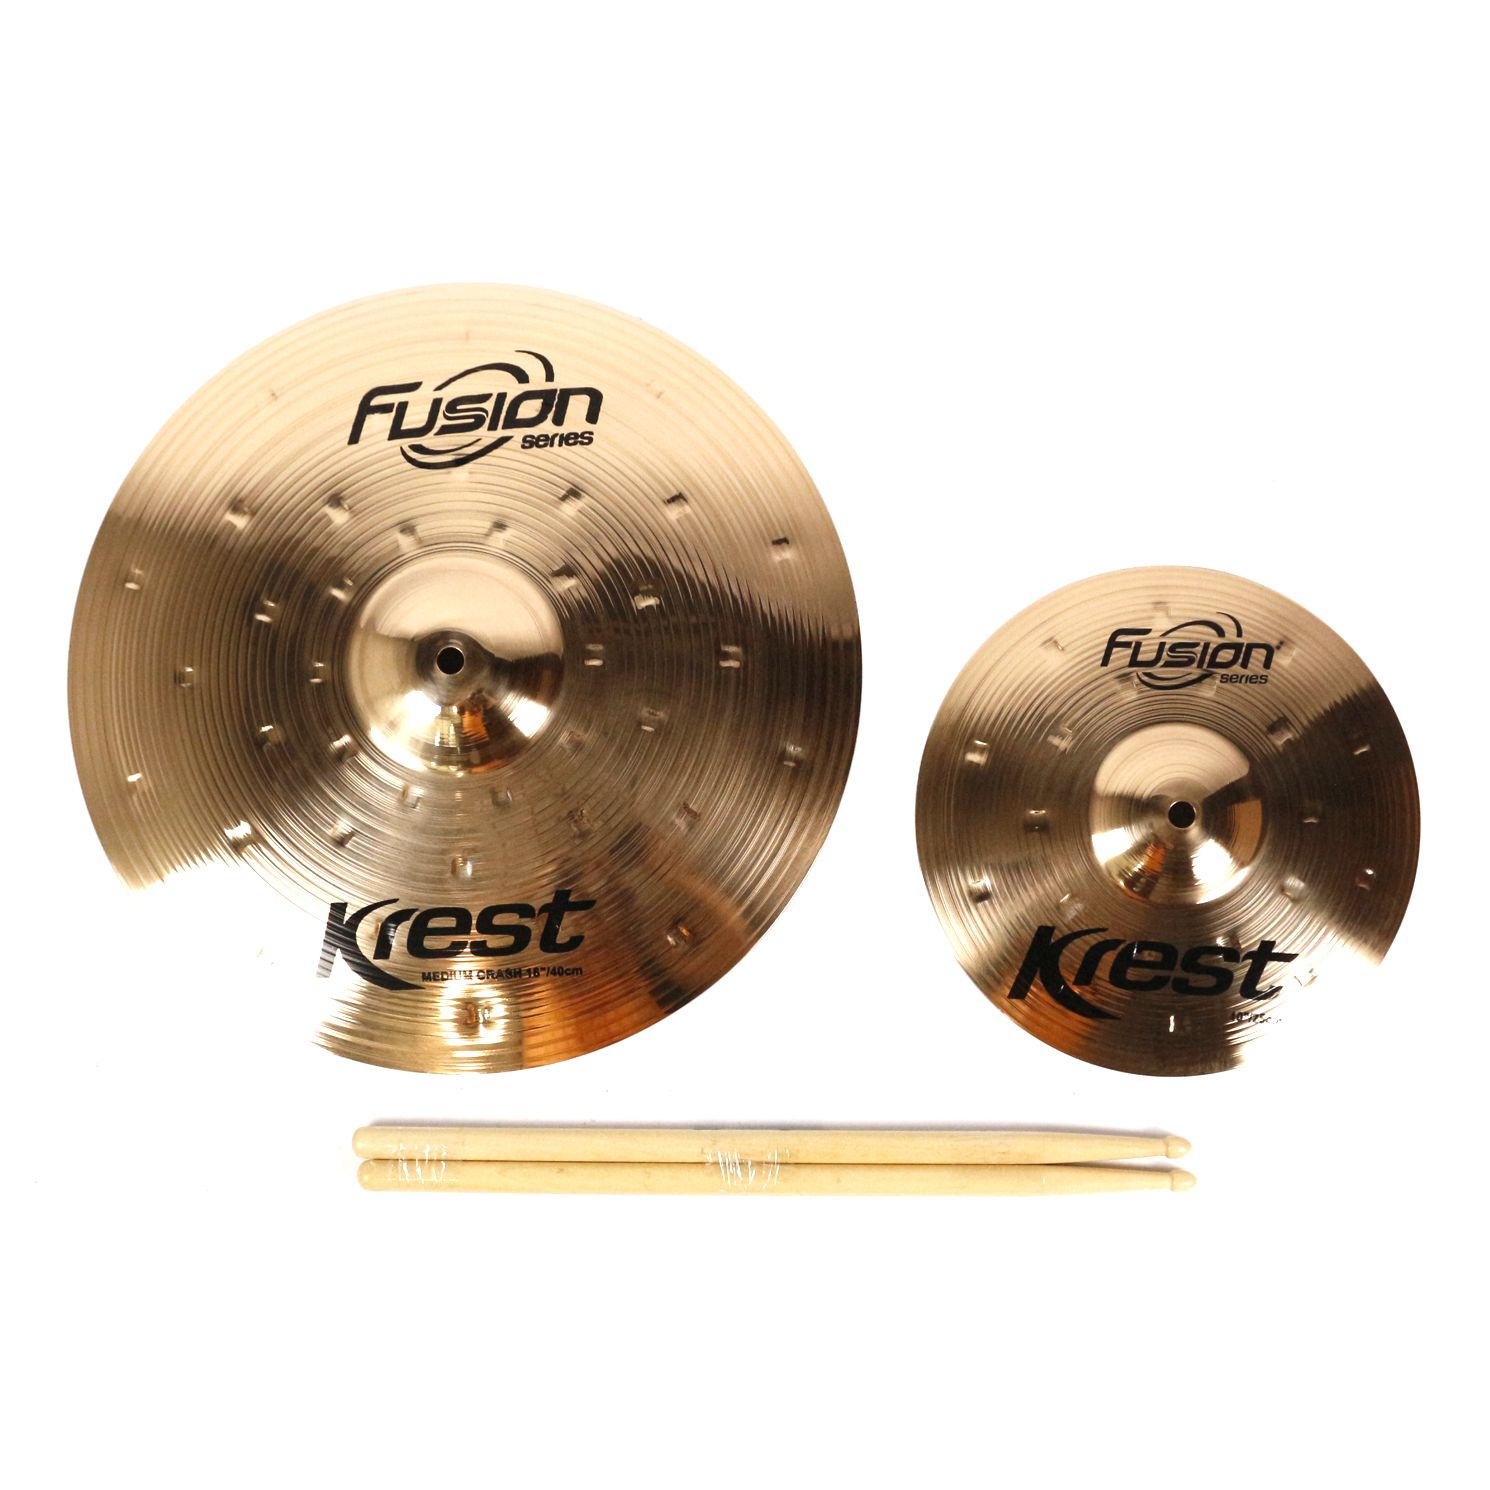 Kit de Pratos Fusion KREST CYMBALS Ataque 16 - SPLASH 10 - Bronze B8